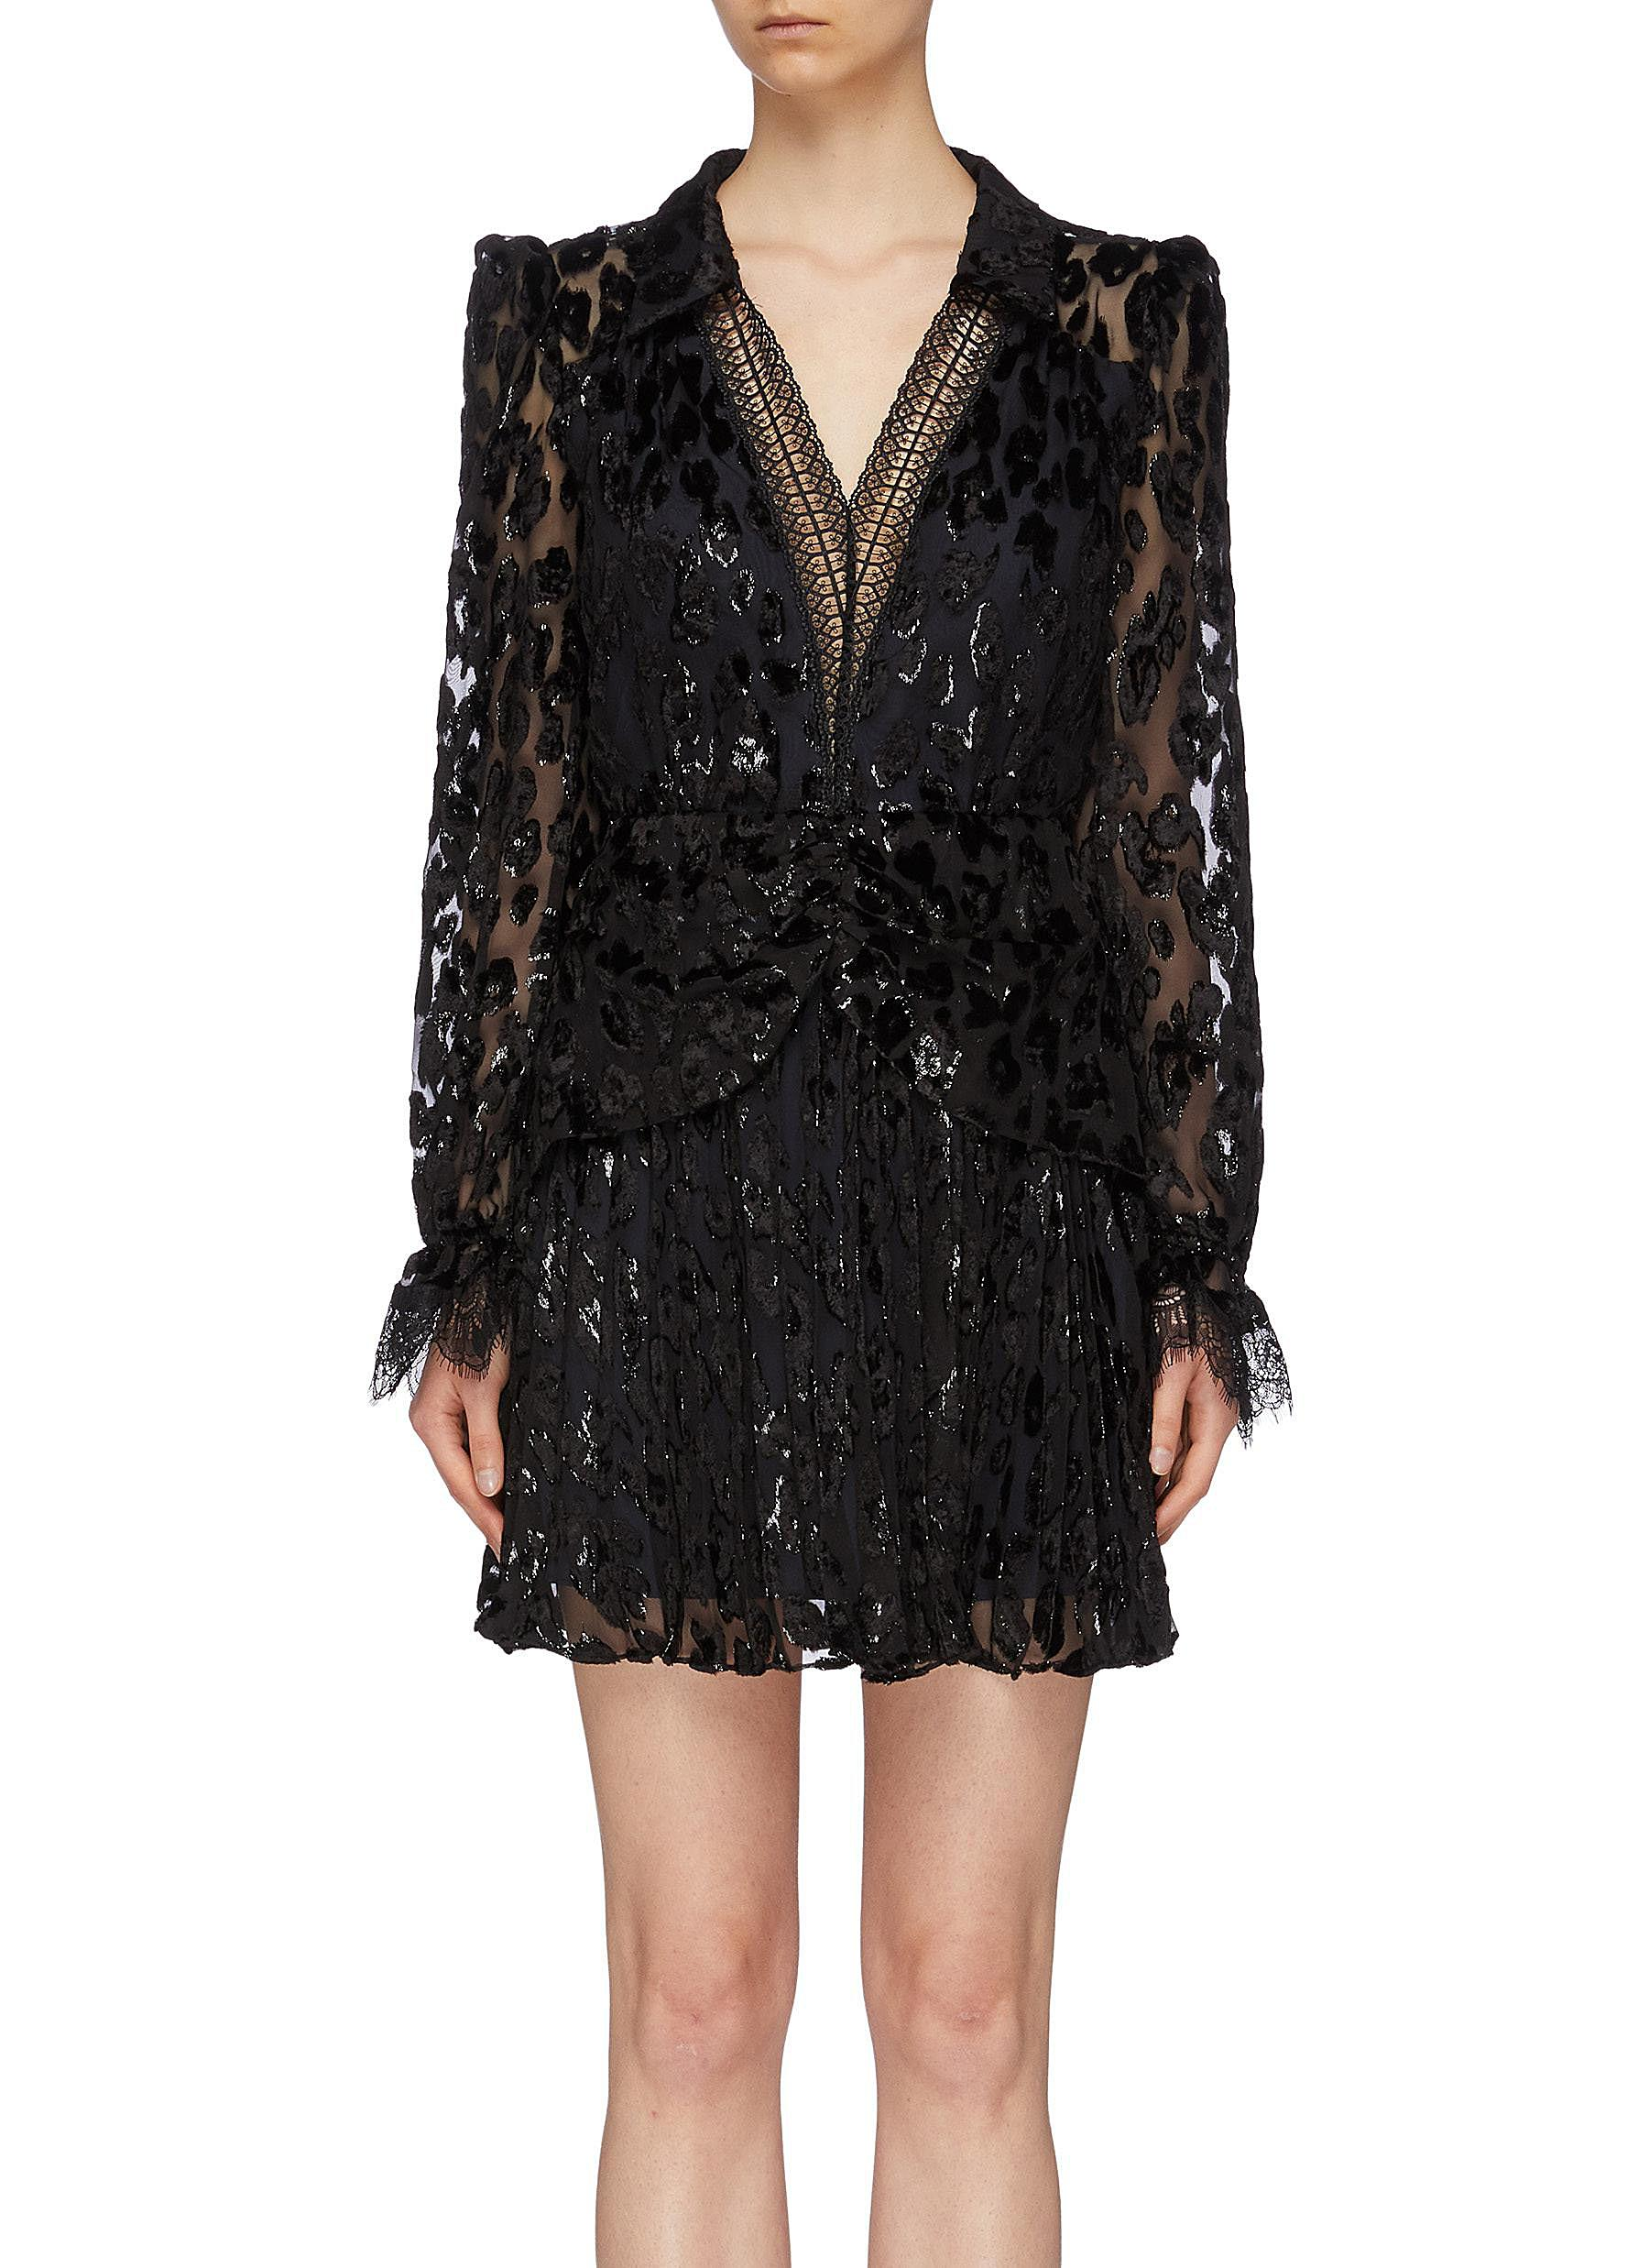 Lace trim pleated metallic leopard devoré V-neck mini dress by Self-Portrait